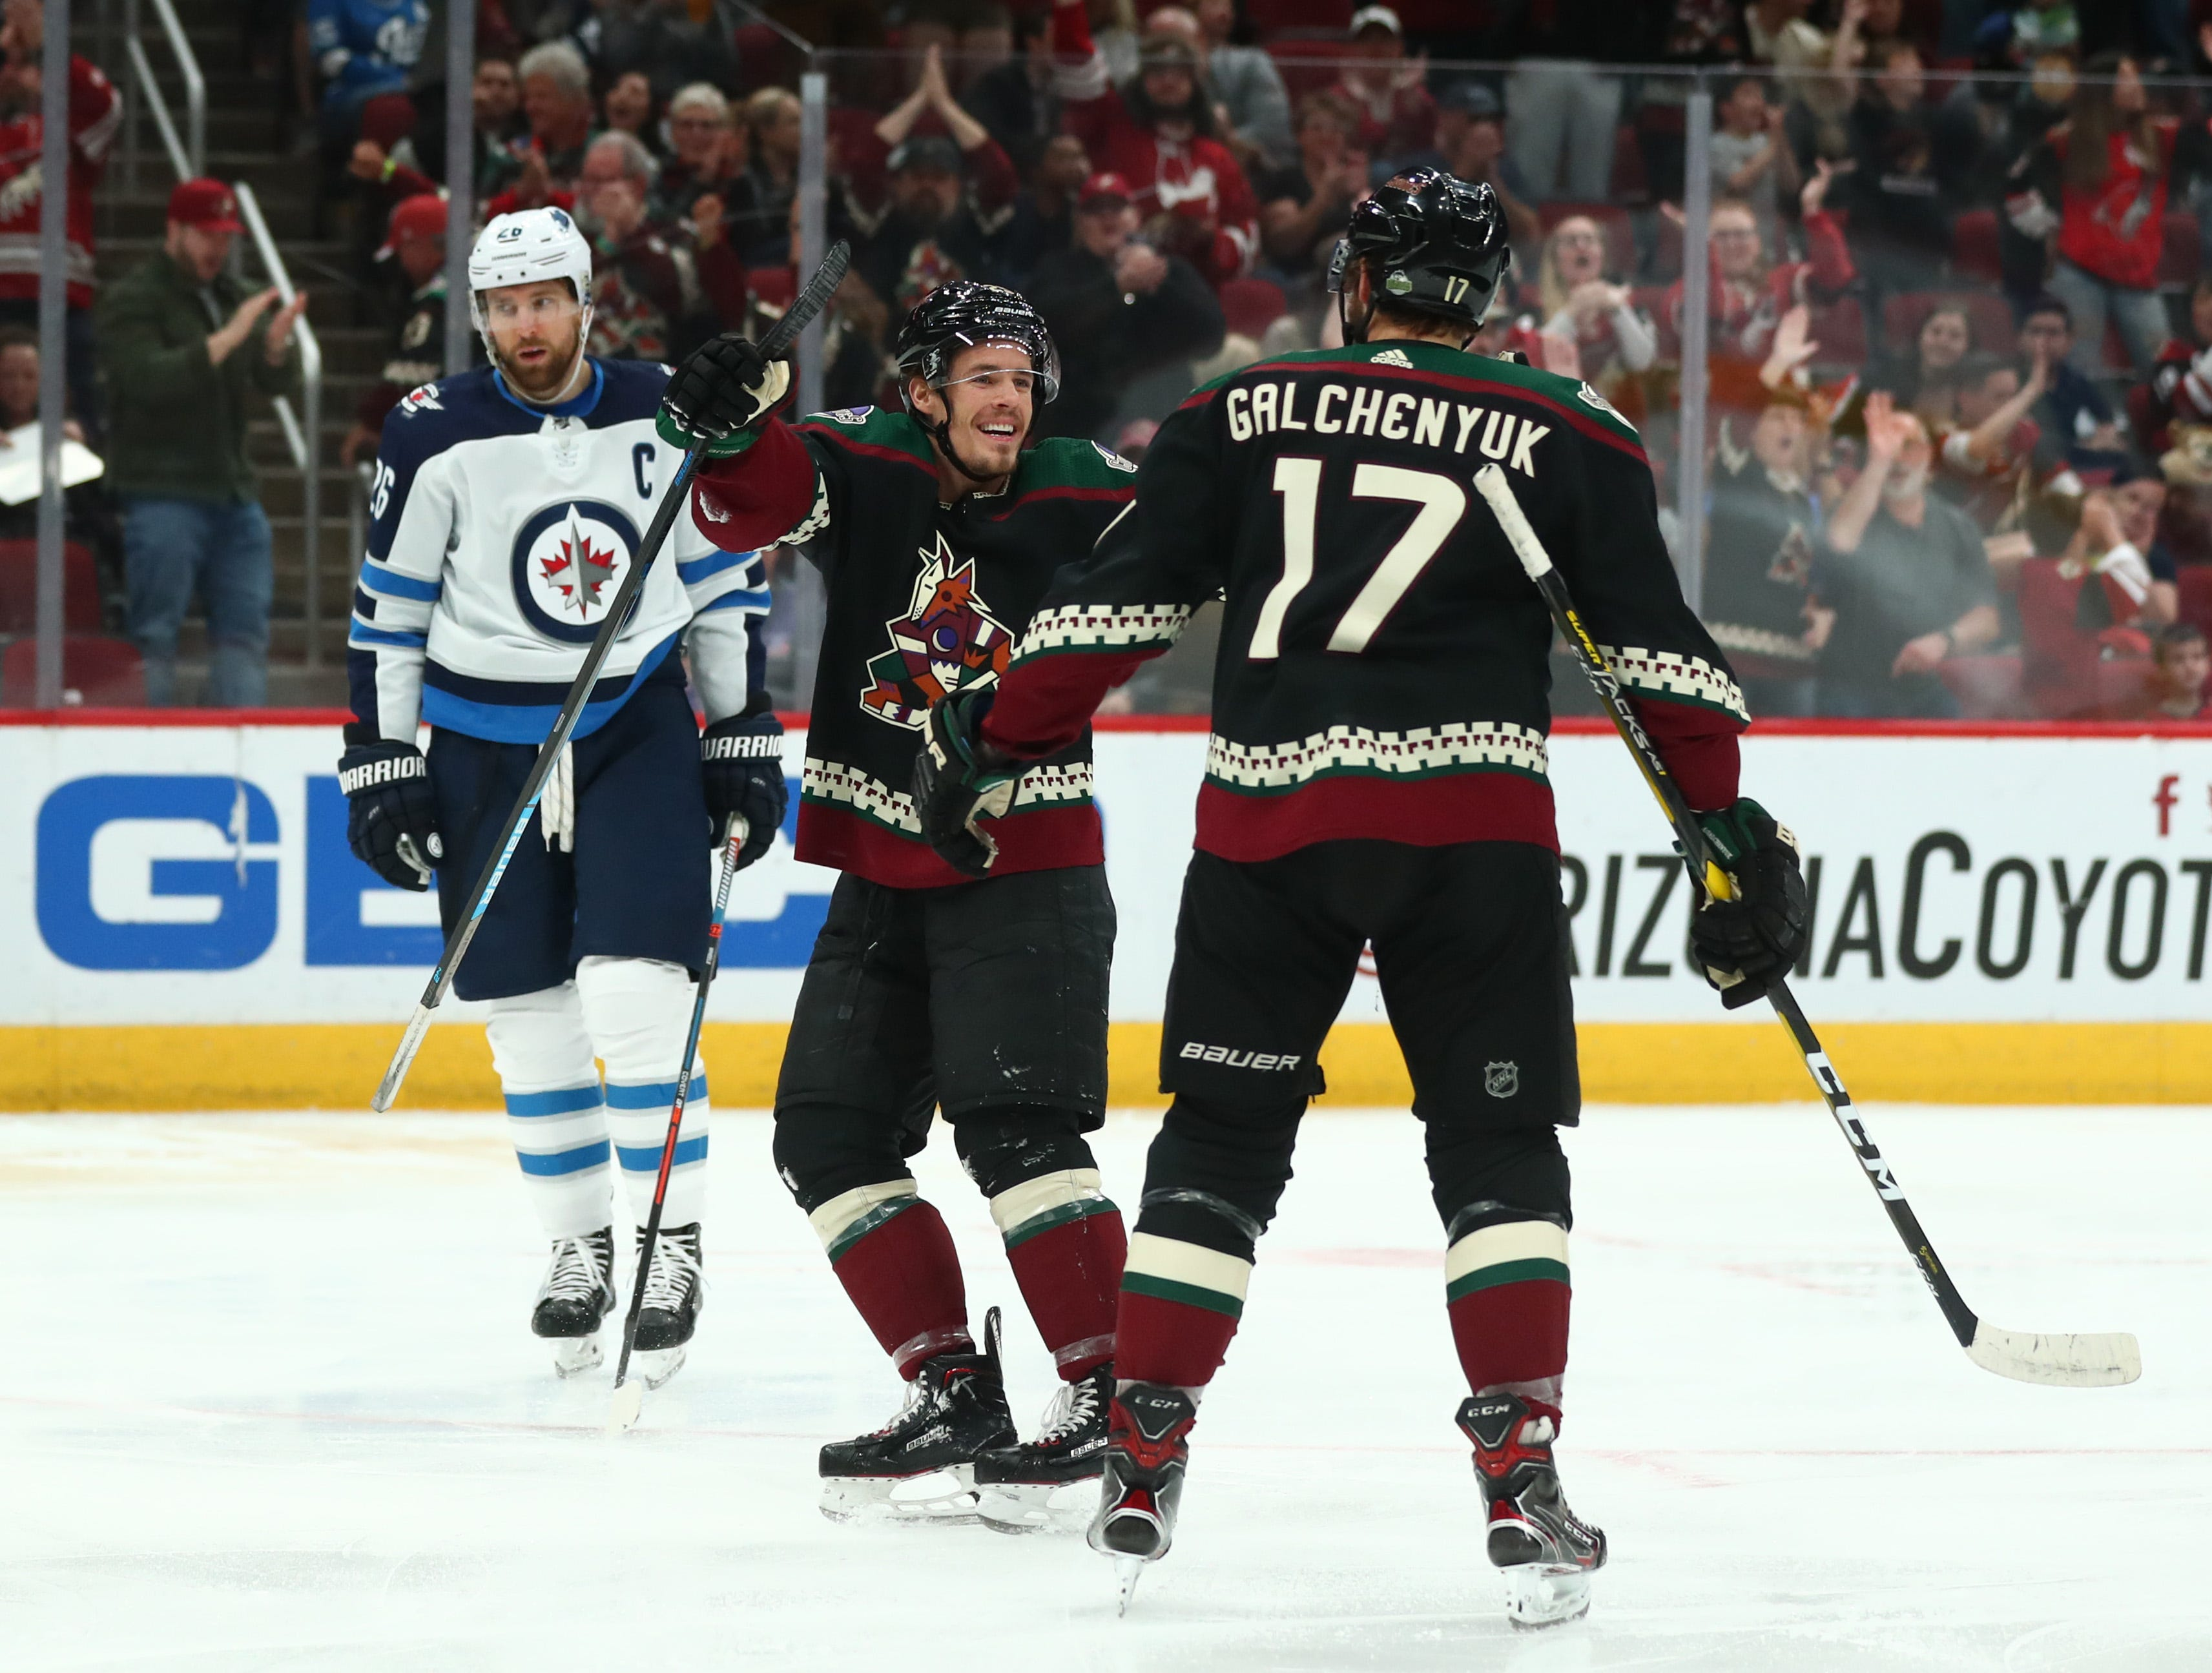 Apr 6, 2019; Glendale, AZ, USA; Arizona Coyotes center Alex Galchenyuk (17) and Nick Cousins (25) celebrate a goal against the Winnipeg Jets in the first period at Gila River Arena. Mandatory Credit: Mark J. Rebilas-USA TODAY Sports